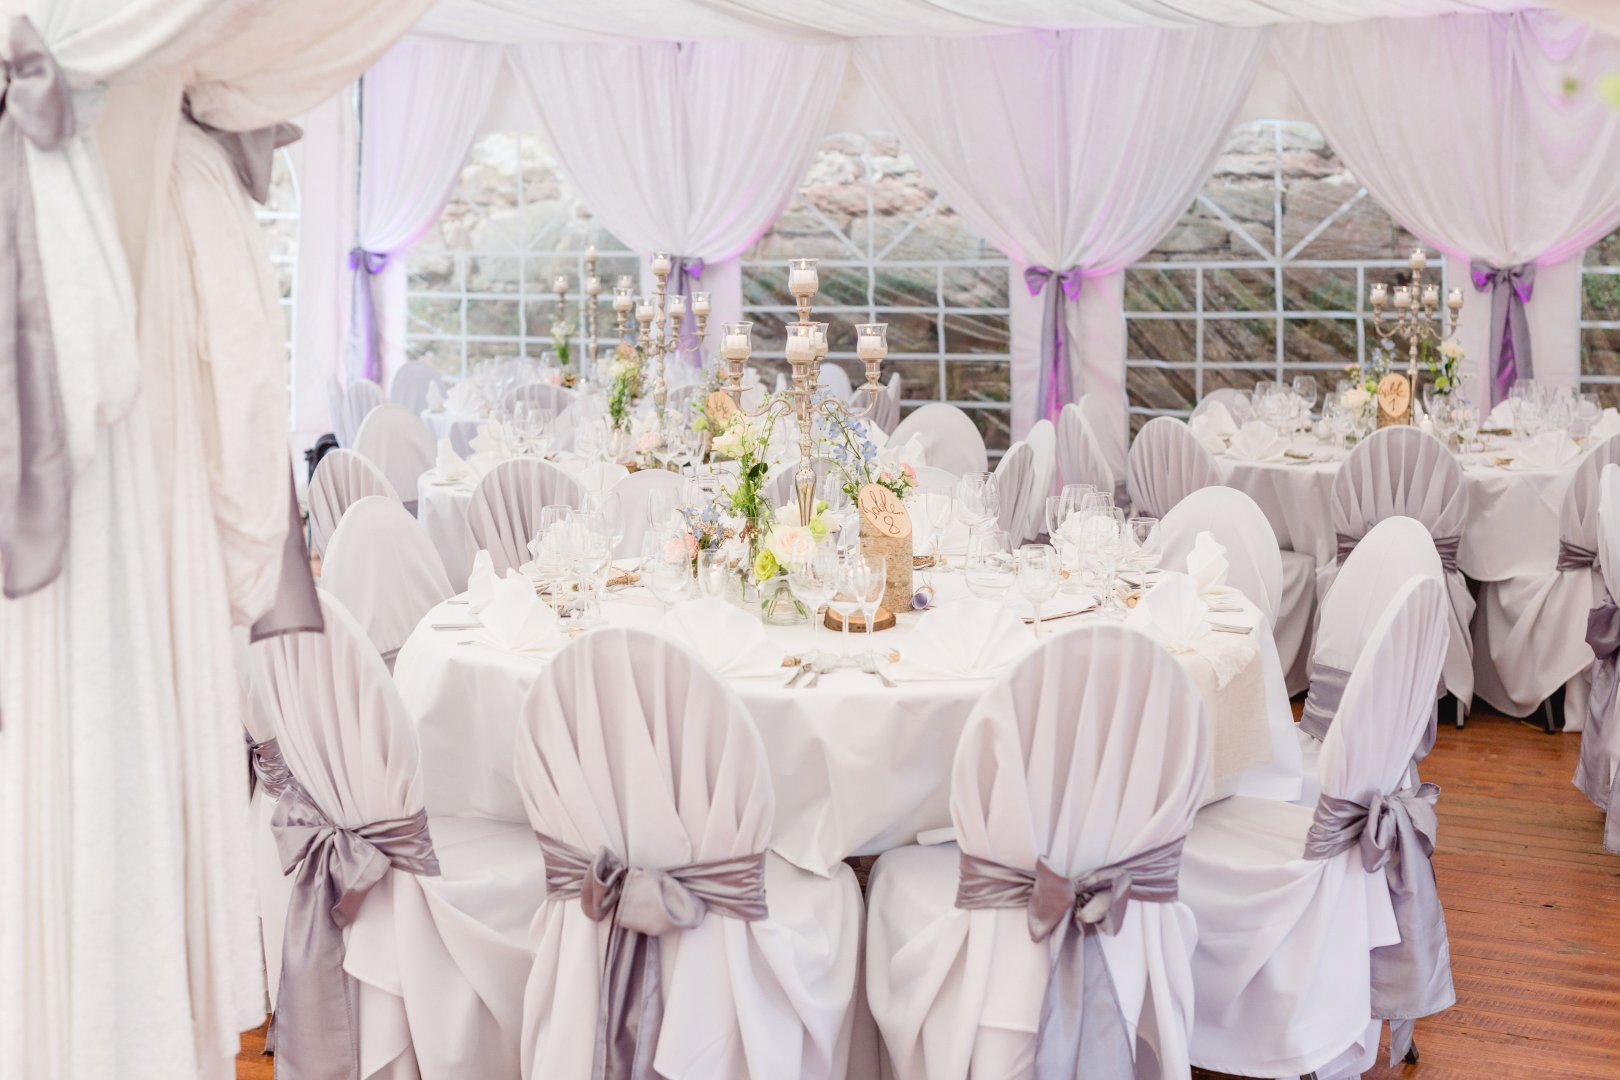 Decoration Wedding banquet Function hall Tablecloth Pink Purple Wedding reception Canopy Lilac Banquet Textile Party Chair Event Tent Linens Ceremony Table Furniture Chiavari chair Flower Petal Interior design Meal Ceiling Floristry Centrepiece Curtain Window Plant